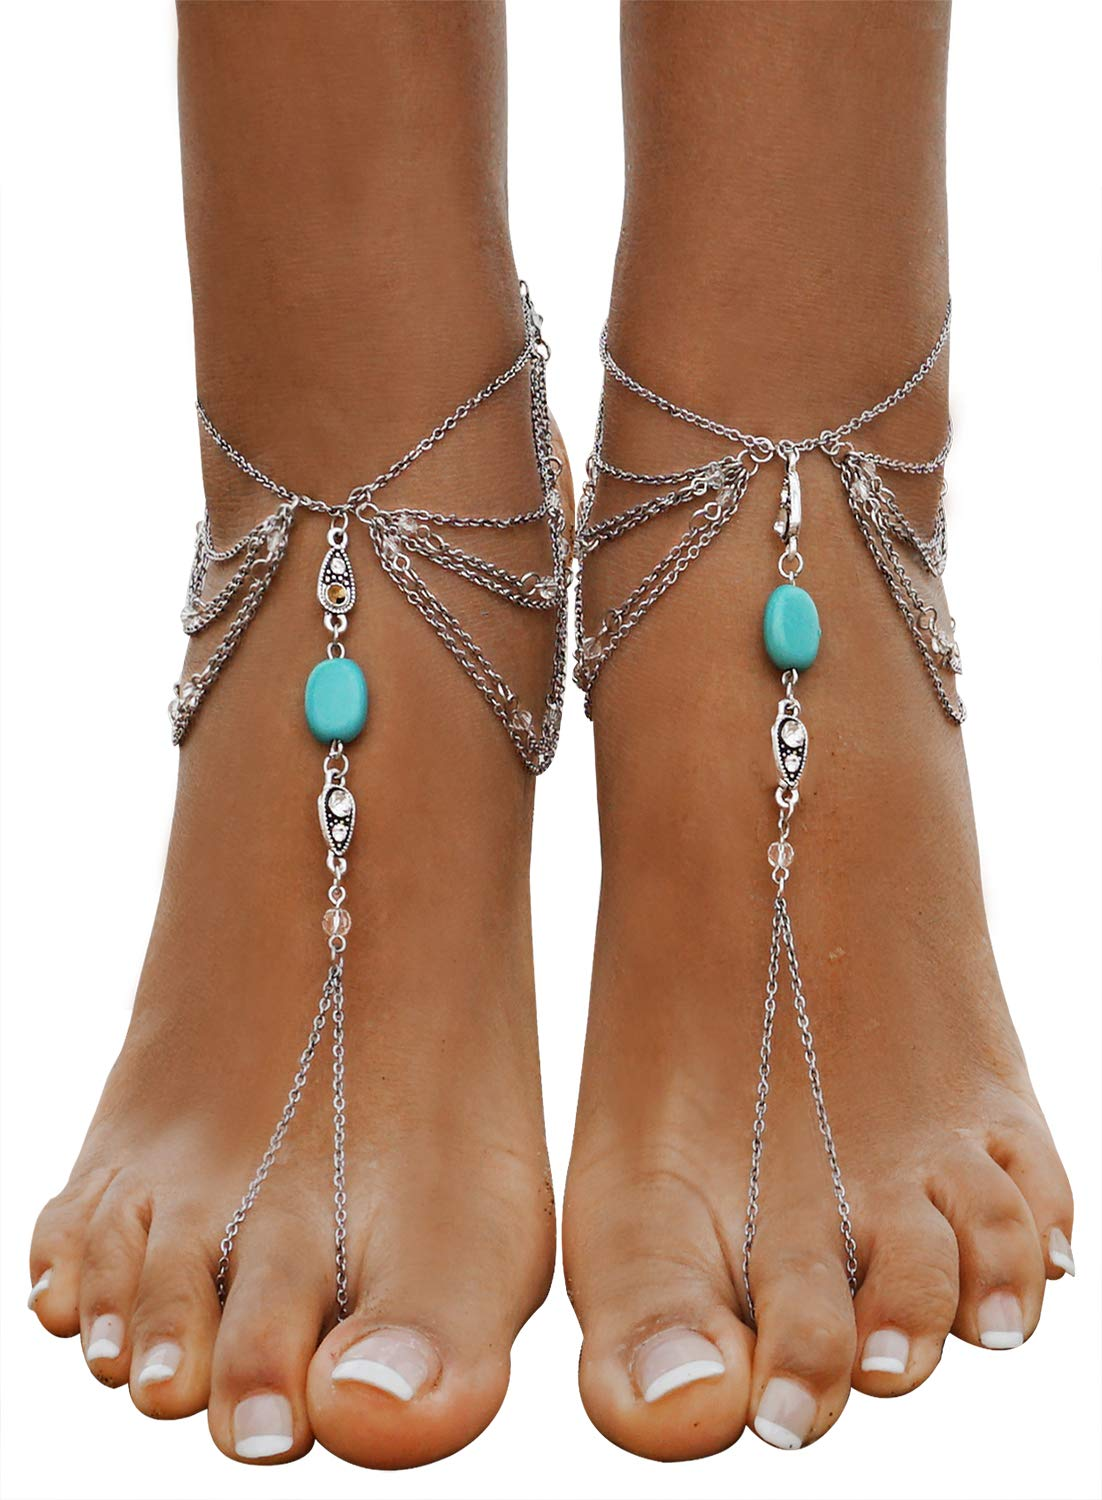 Bienvenu Beach Wedding Anklet Chain Tassel Turquoise Foot Chain 2 Pcs,Silver_Style 2